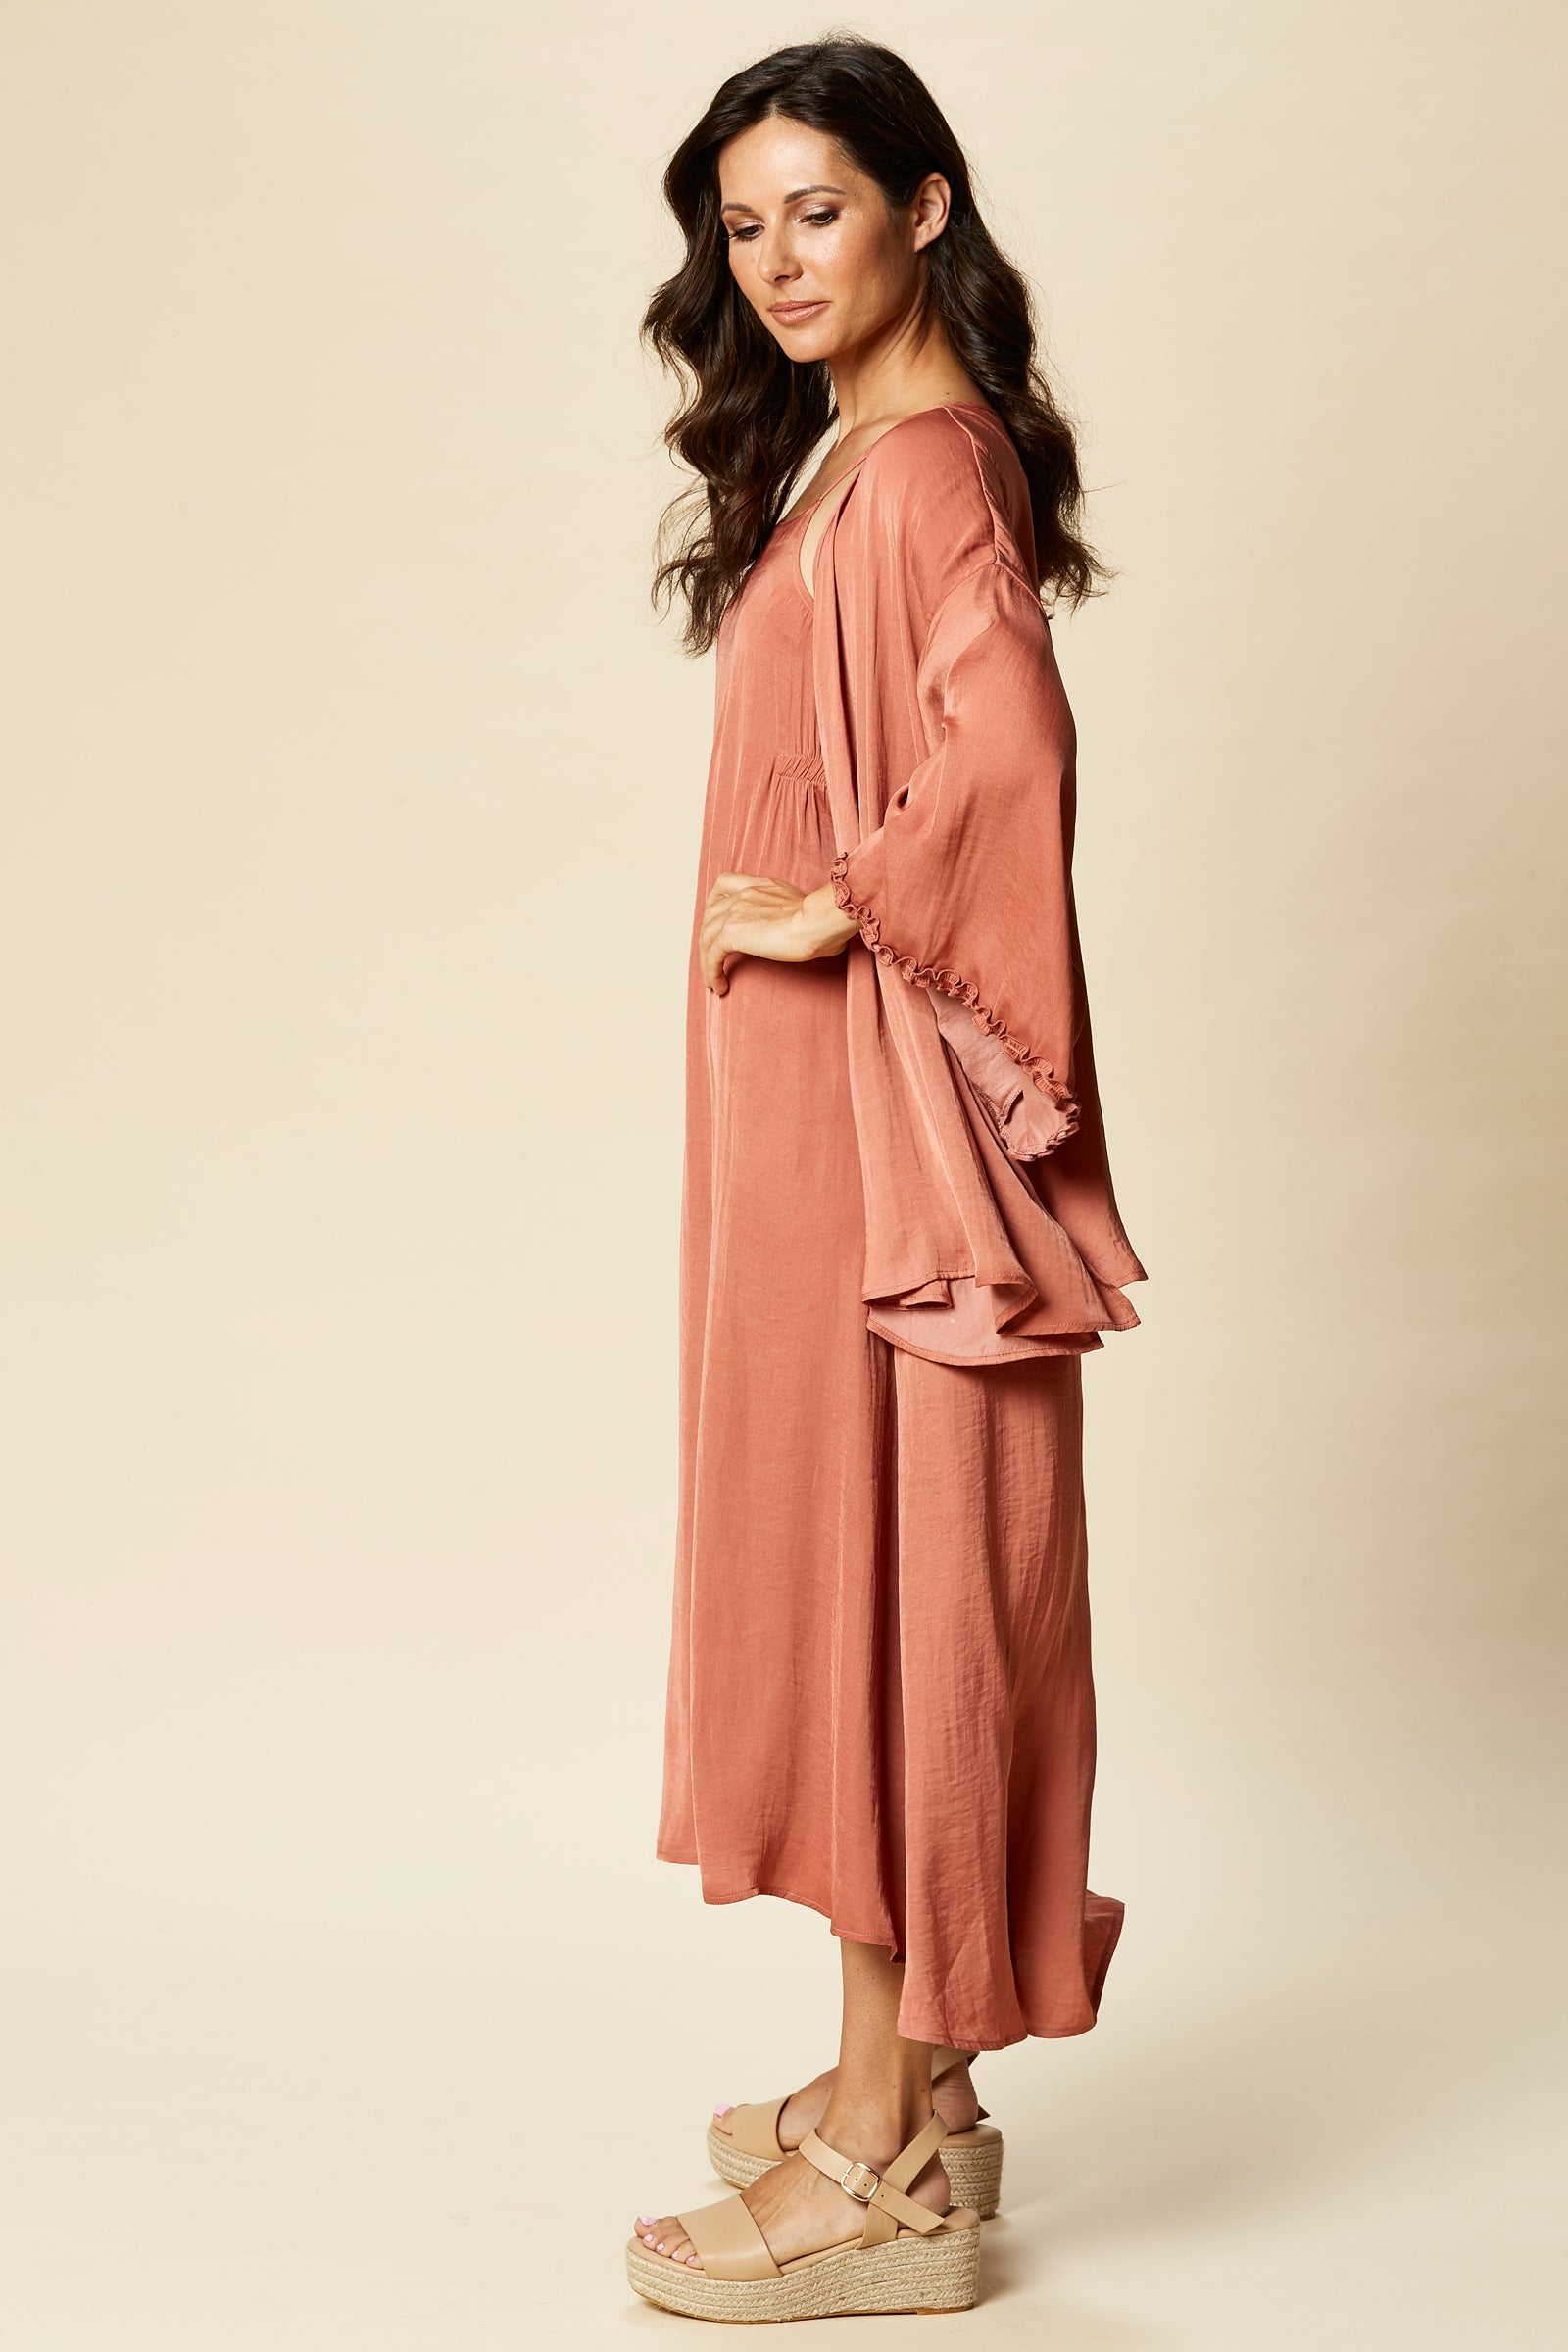 Zena Cape - Clay - eb&ive Clothing - Top 3/4 Sleeve